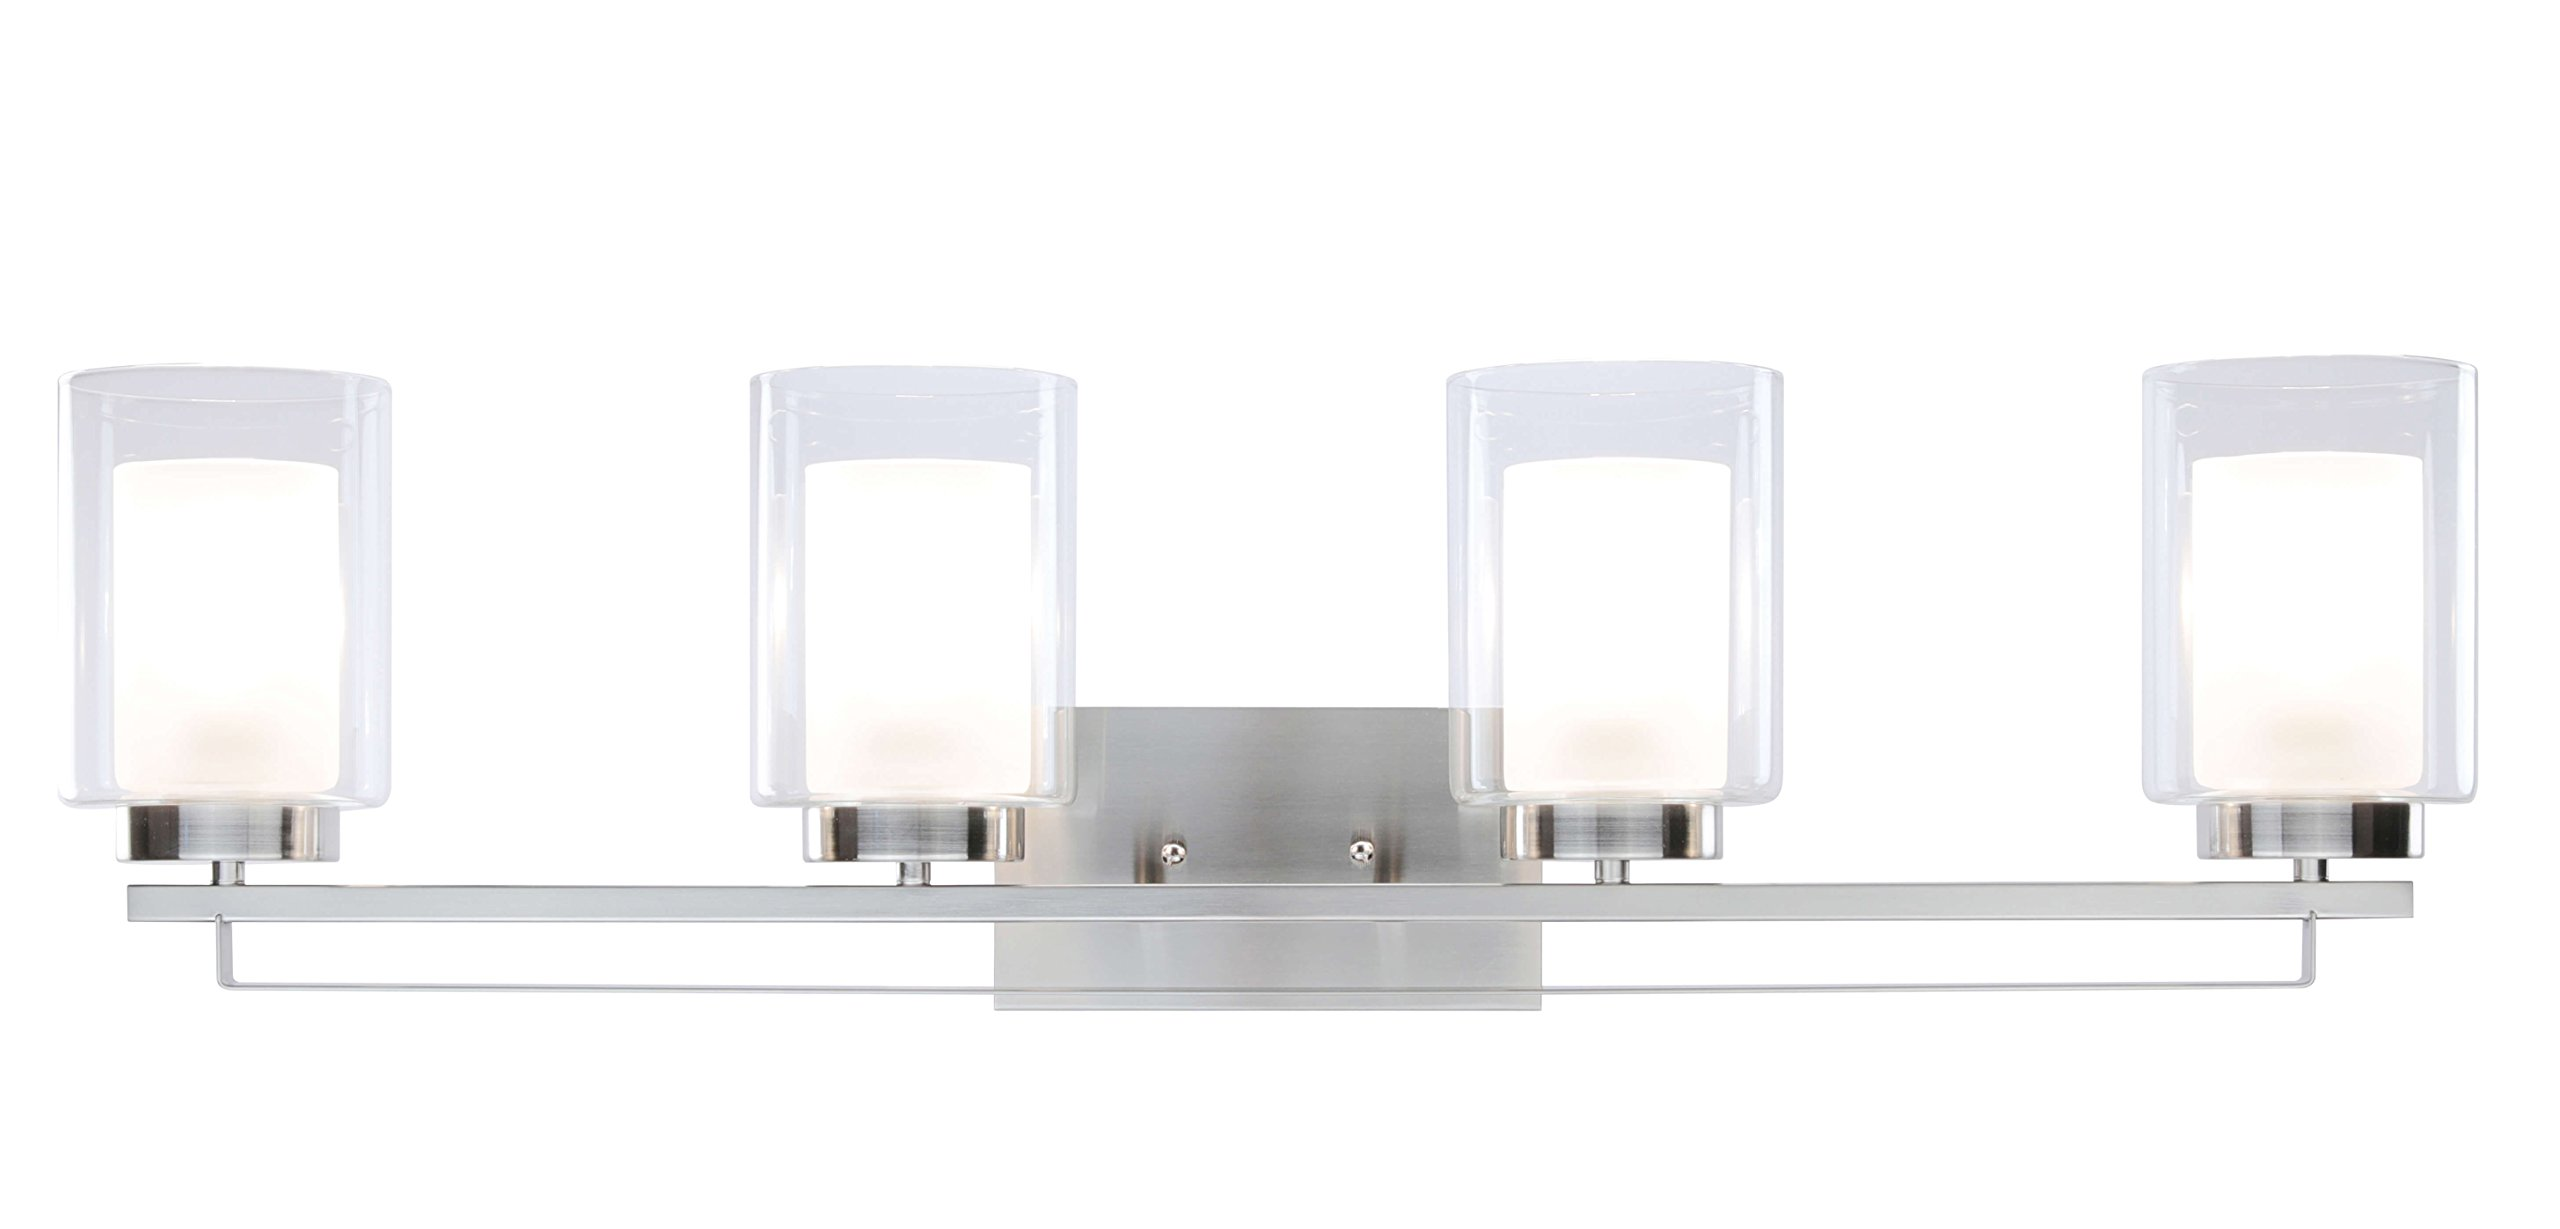 Wall Light 4 Light Bathroom Vanity Lighting with Dual Glass Shade in Brushed Nickel Indoor Modern Wall Mount Light for Bathroom & Kitchen XiNBEi-Lighting XB-W1195-4-BN by XiNBEi Lighting (Image #2)